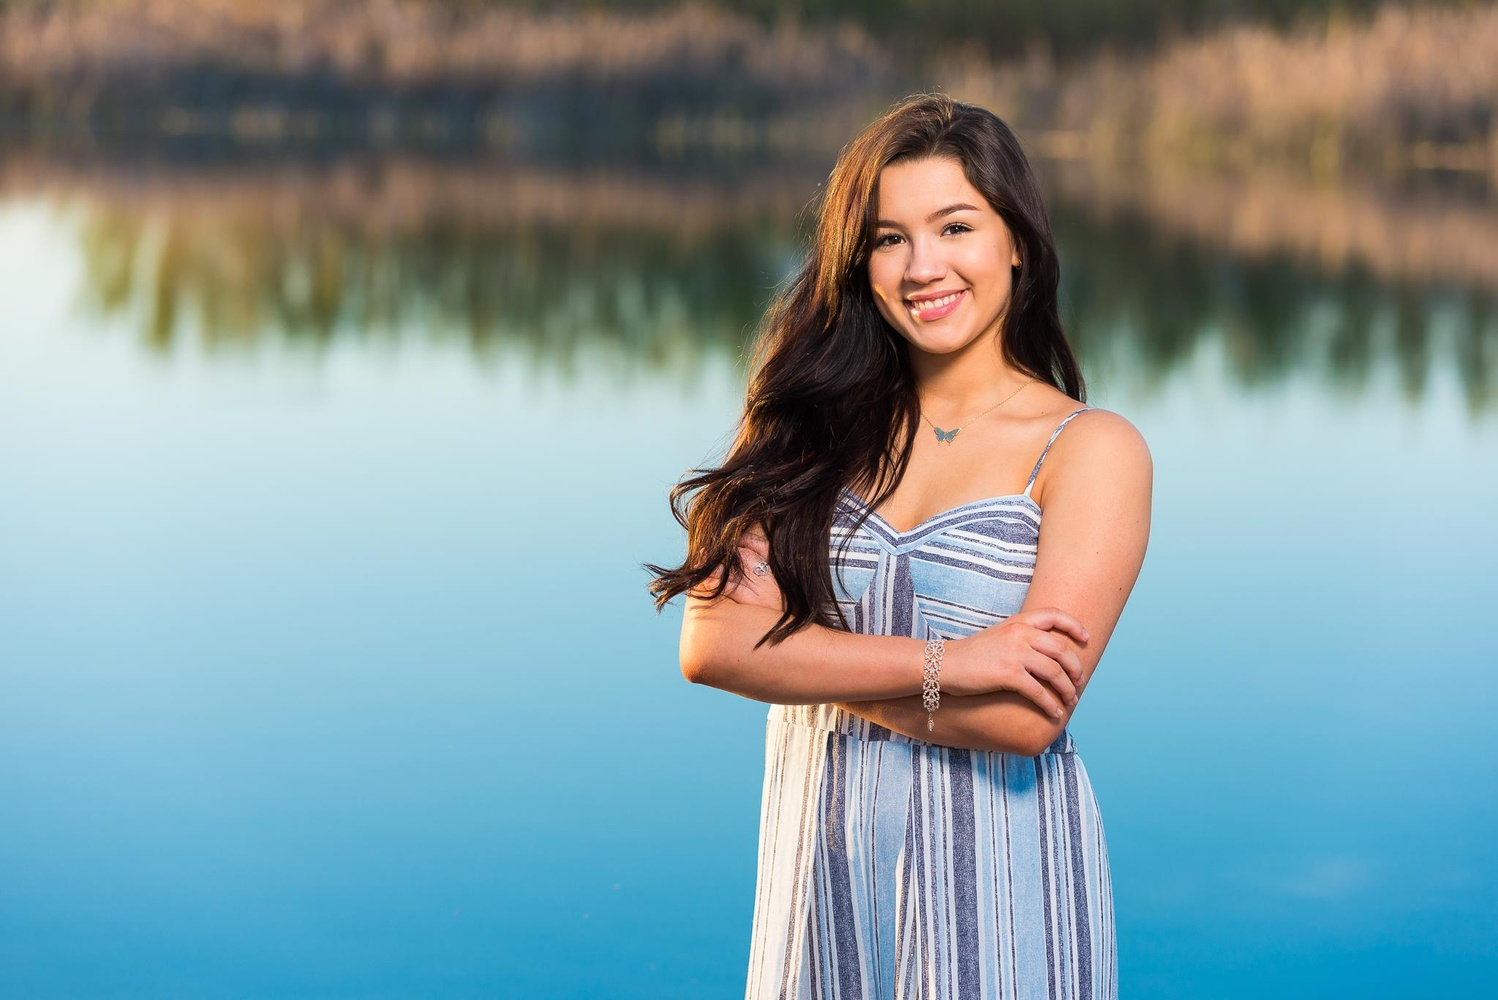 Outdoor Senior Portrait by Dusty Wooddell